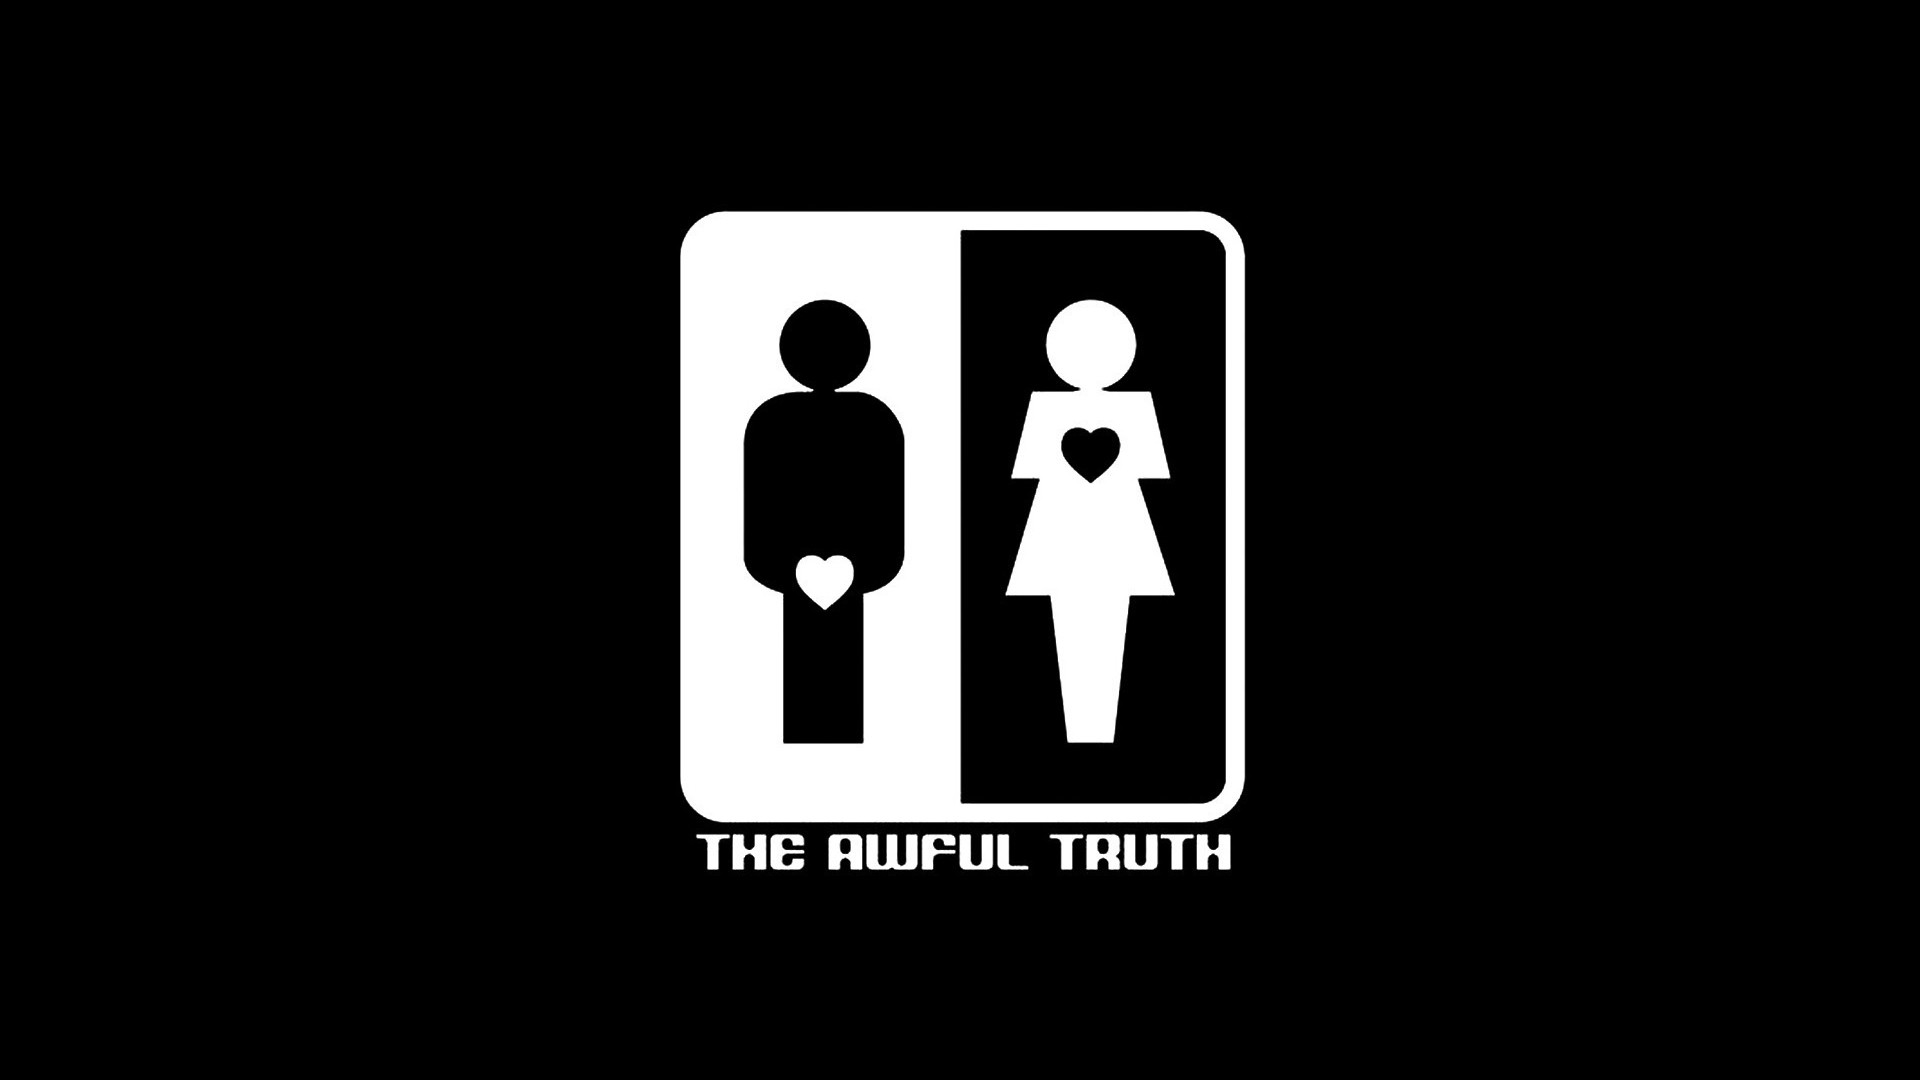 … the awful truth desktop pc and mac wallpaper …